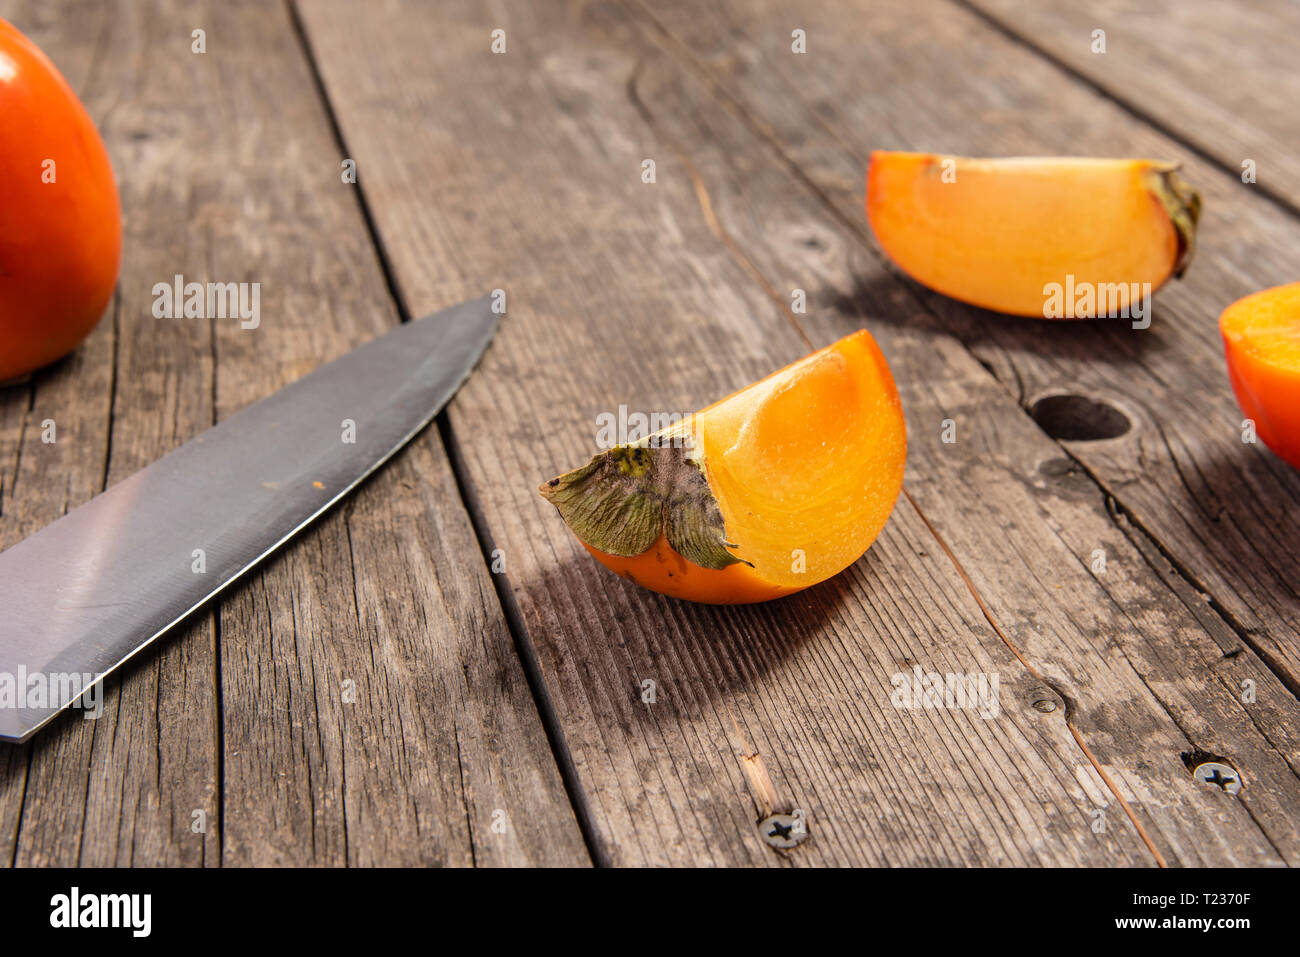 Particle of persimmon with knife on retro wooden table, vitamins - Stock Image